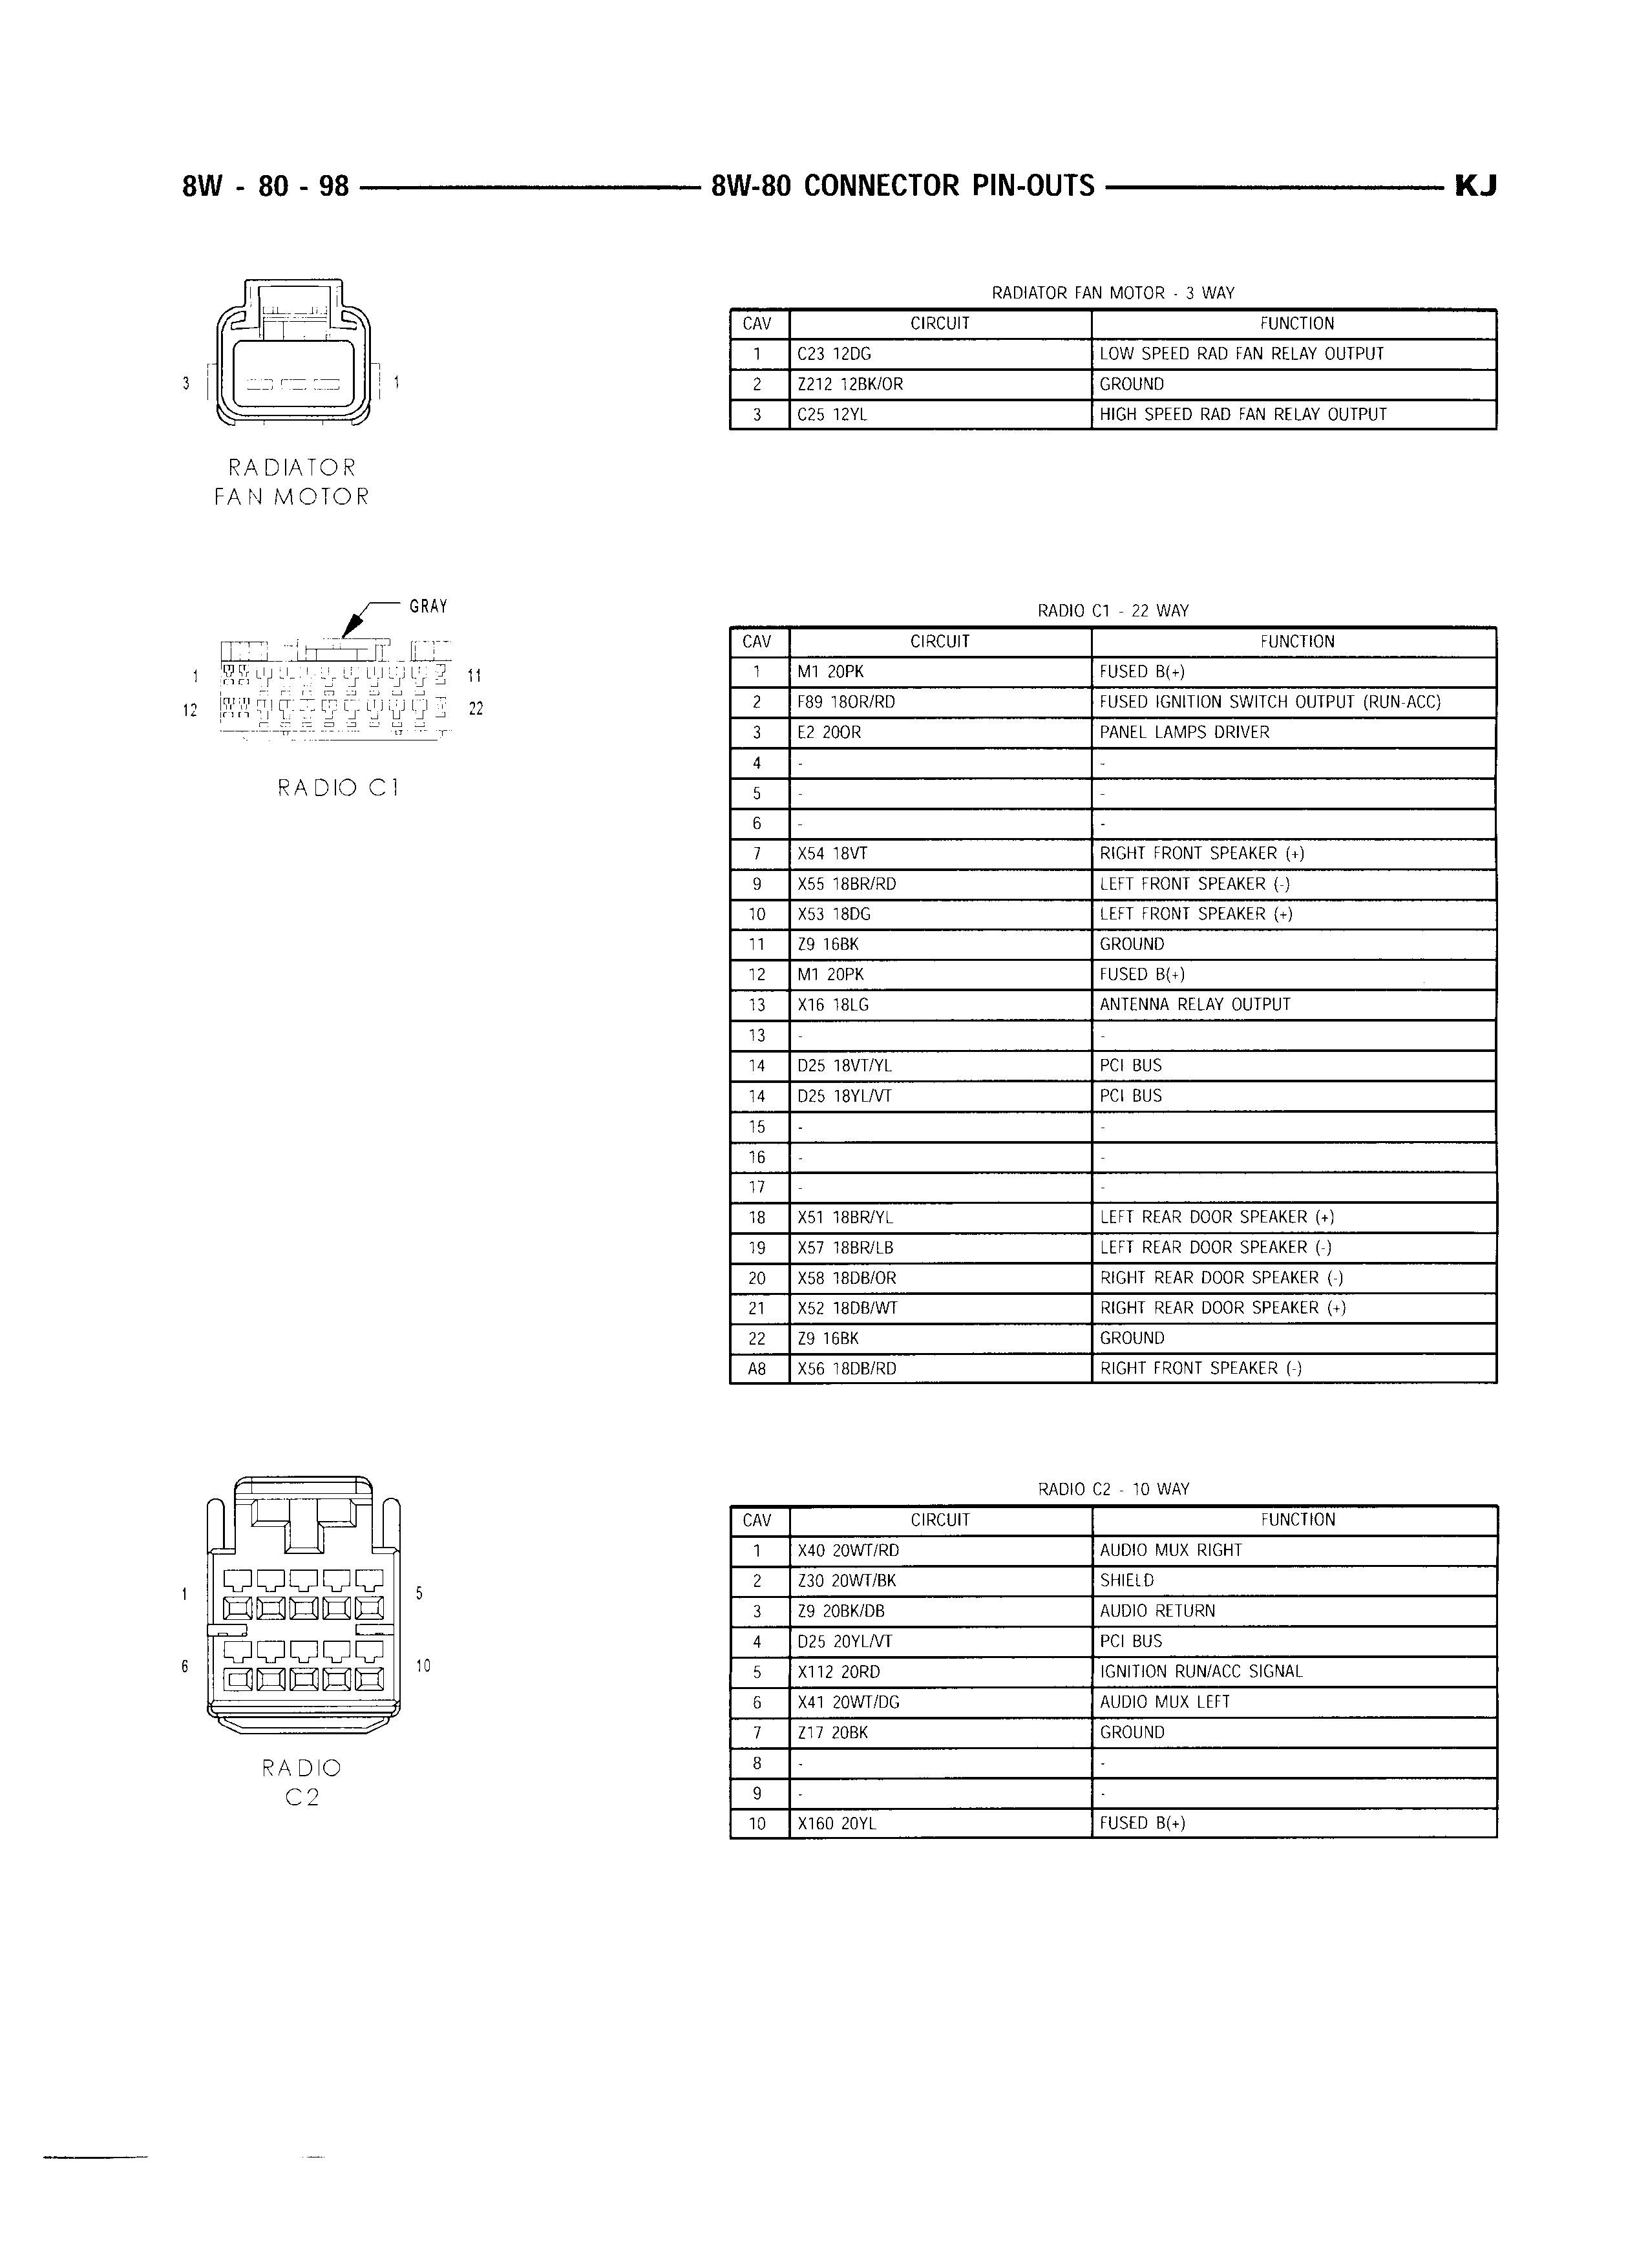 2002 Jeep Liberty Wiring Diagram from static-cdn.imageservice.cloud